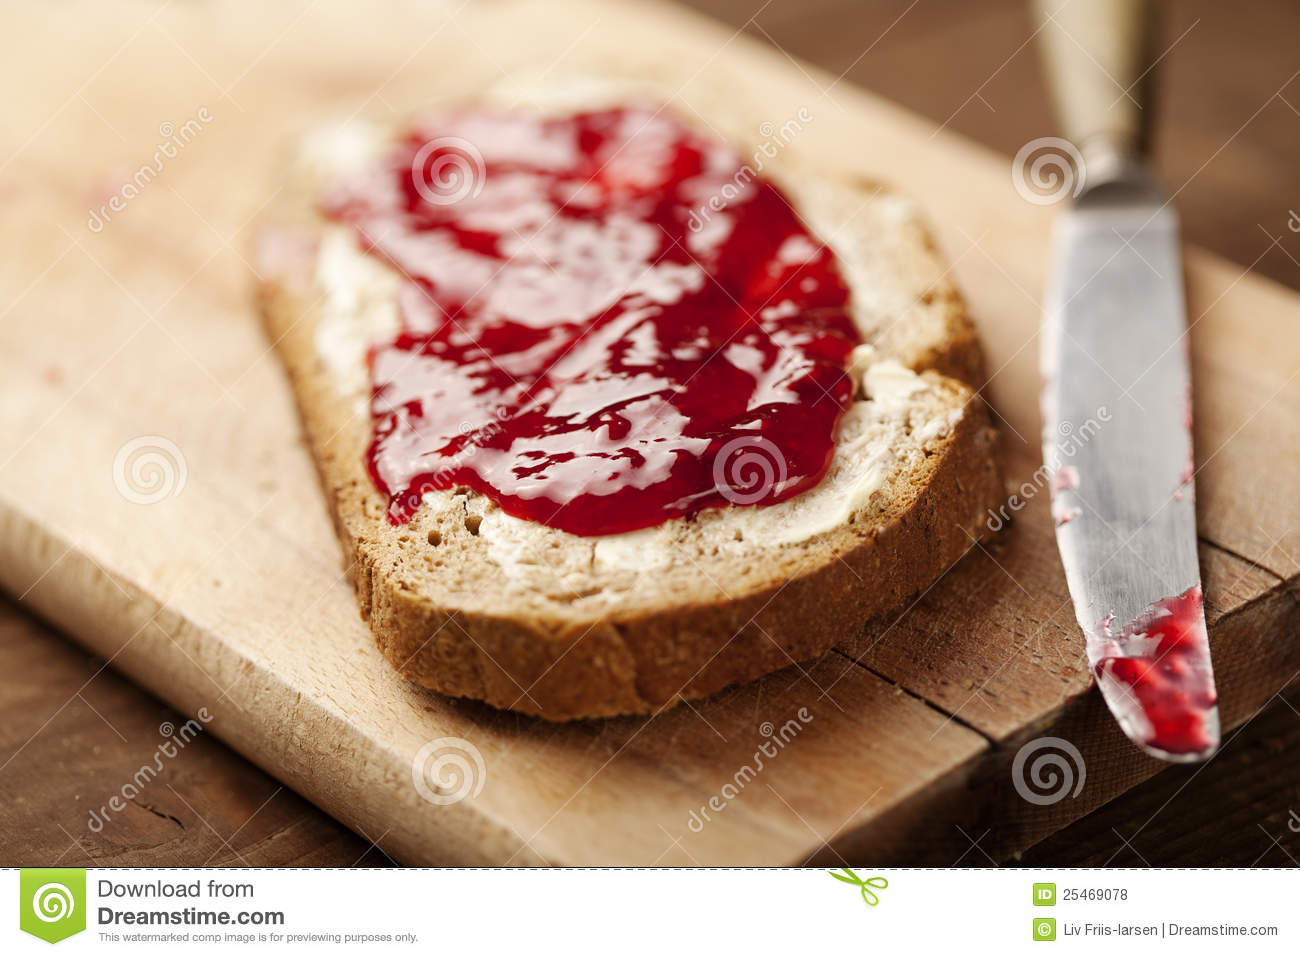 Jam on bread